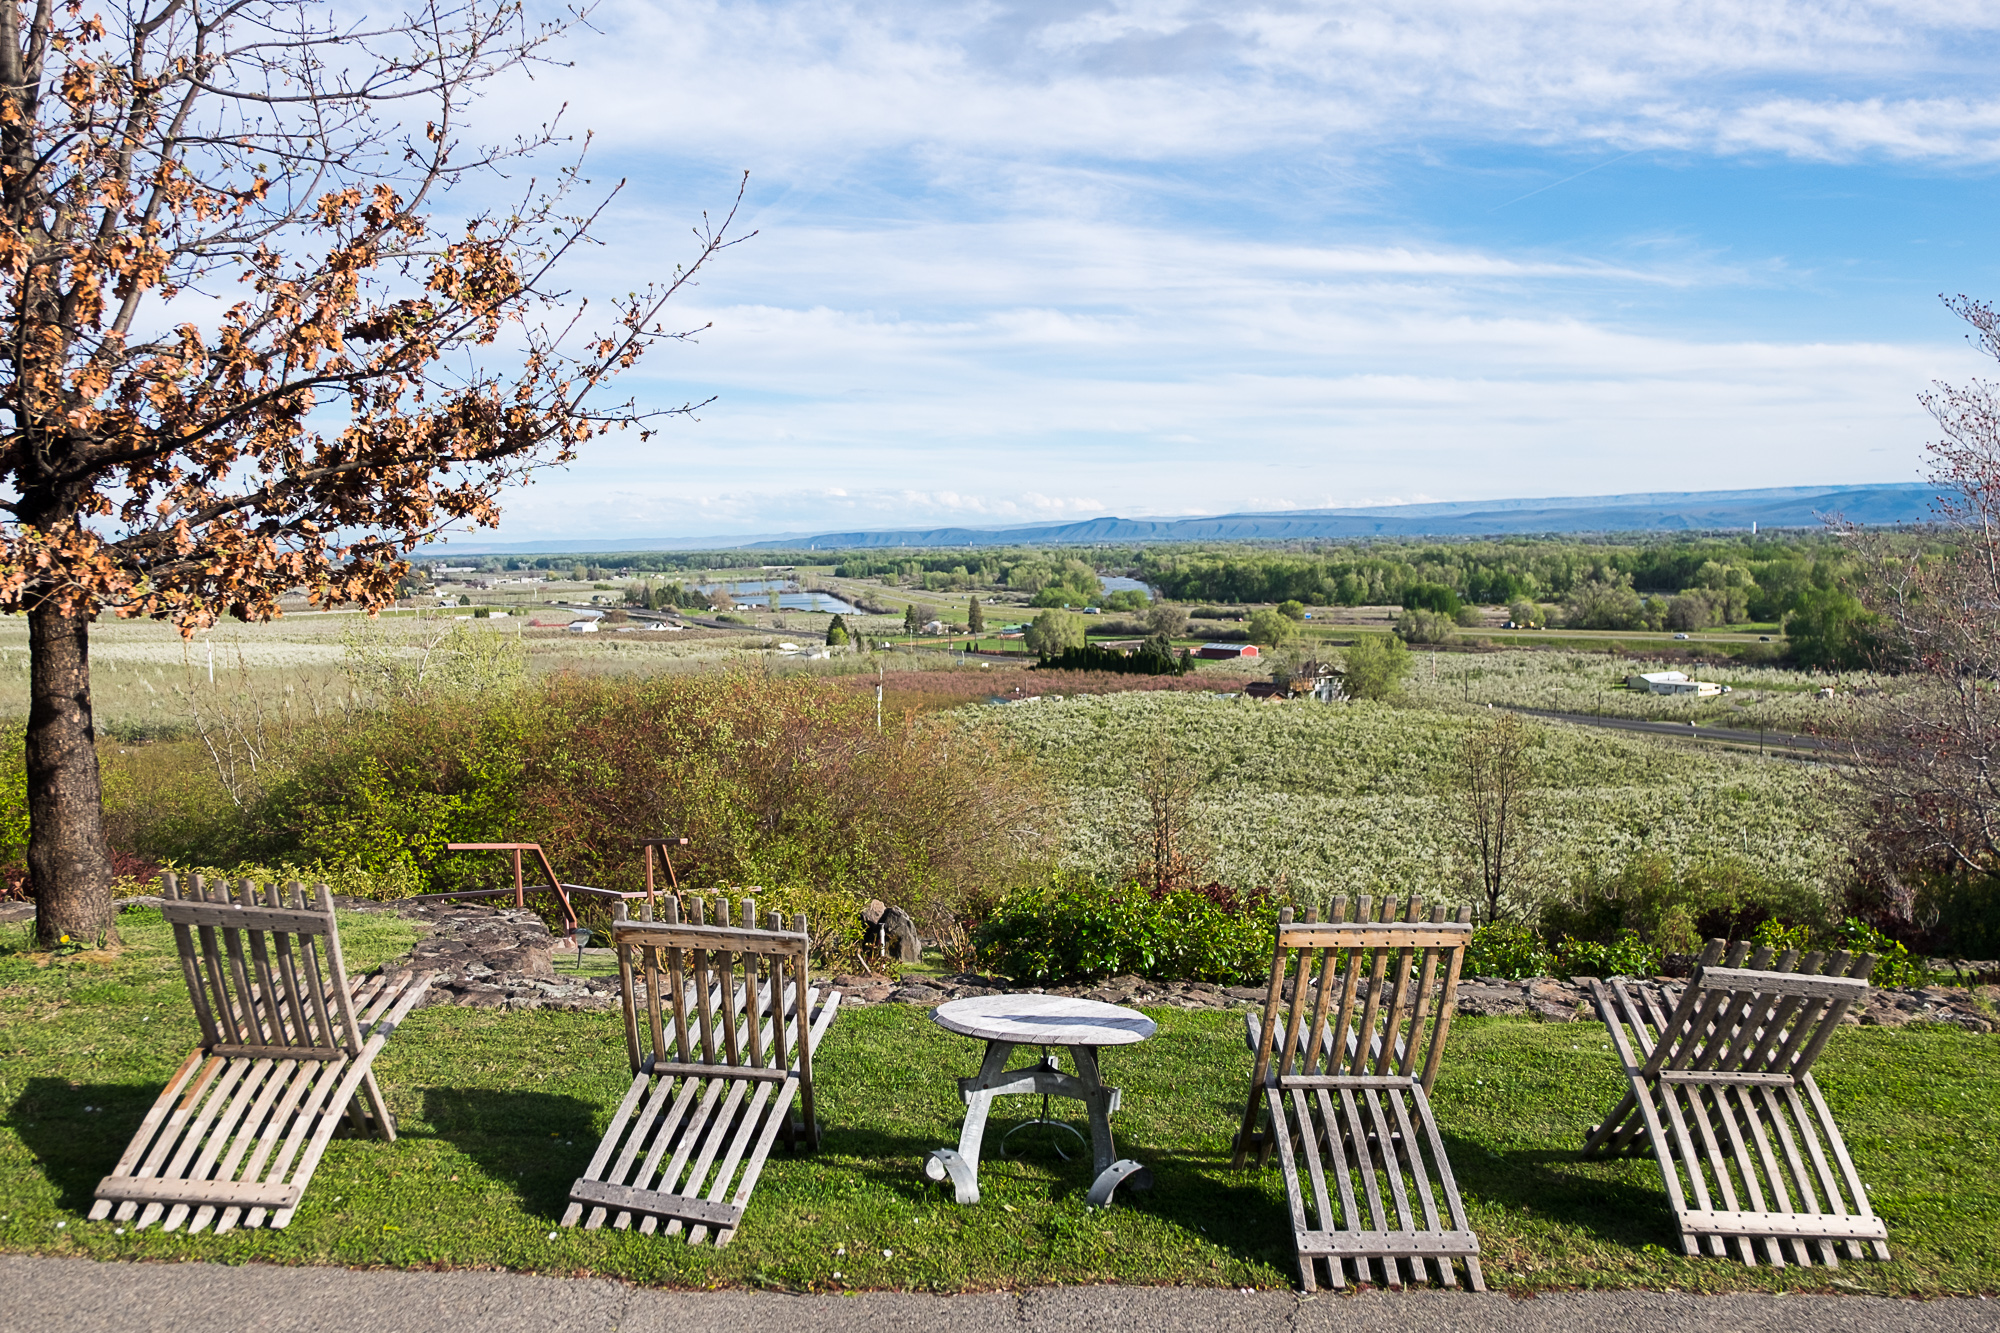 Windy Point Vineyards (Image: Paola Thomas/Seattle Refined)